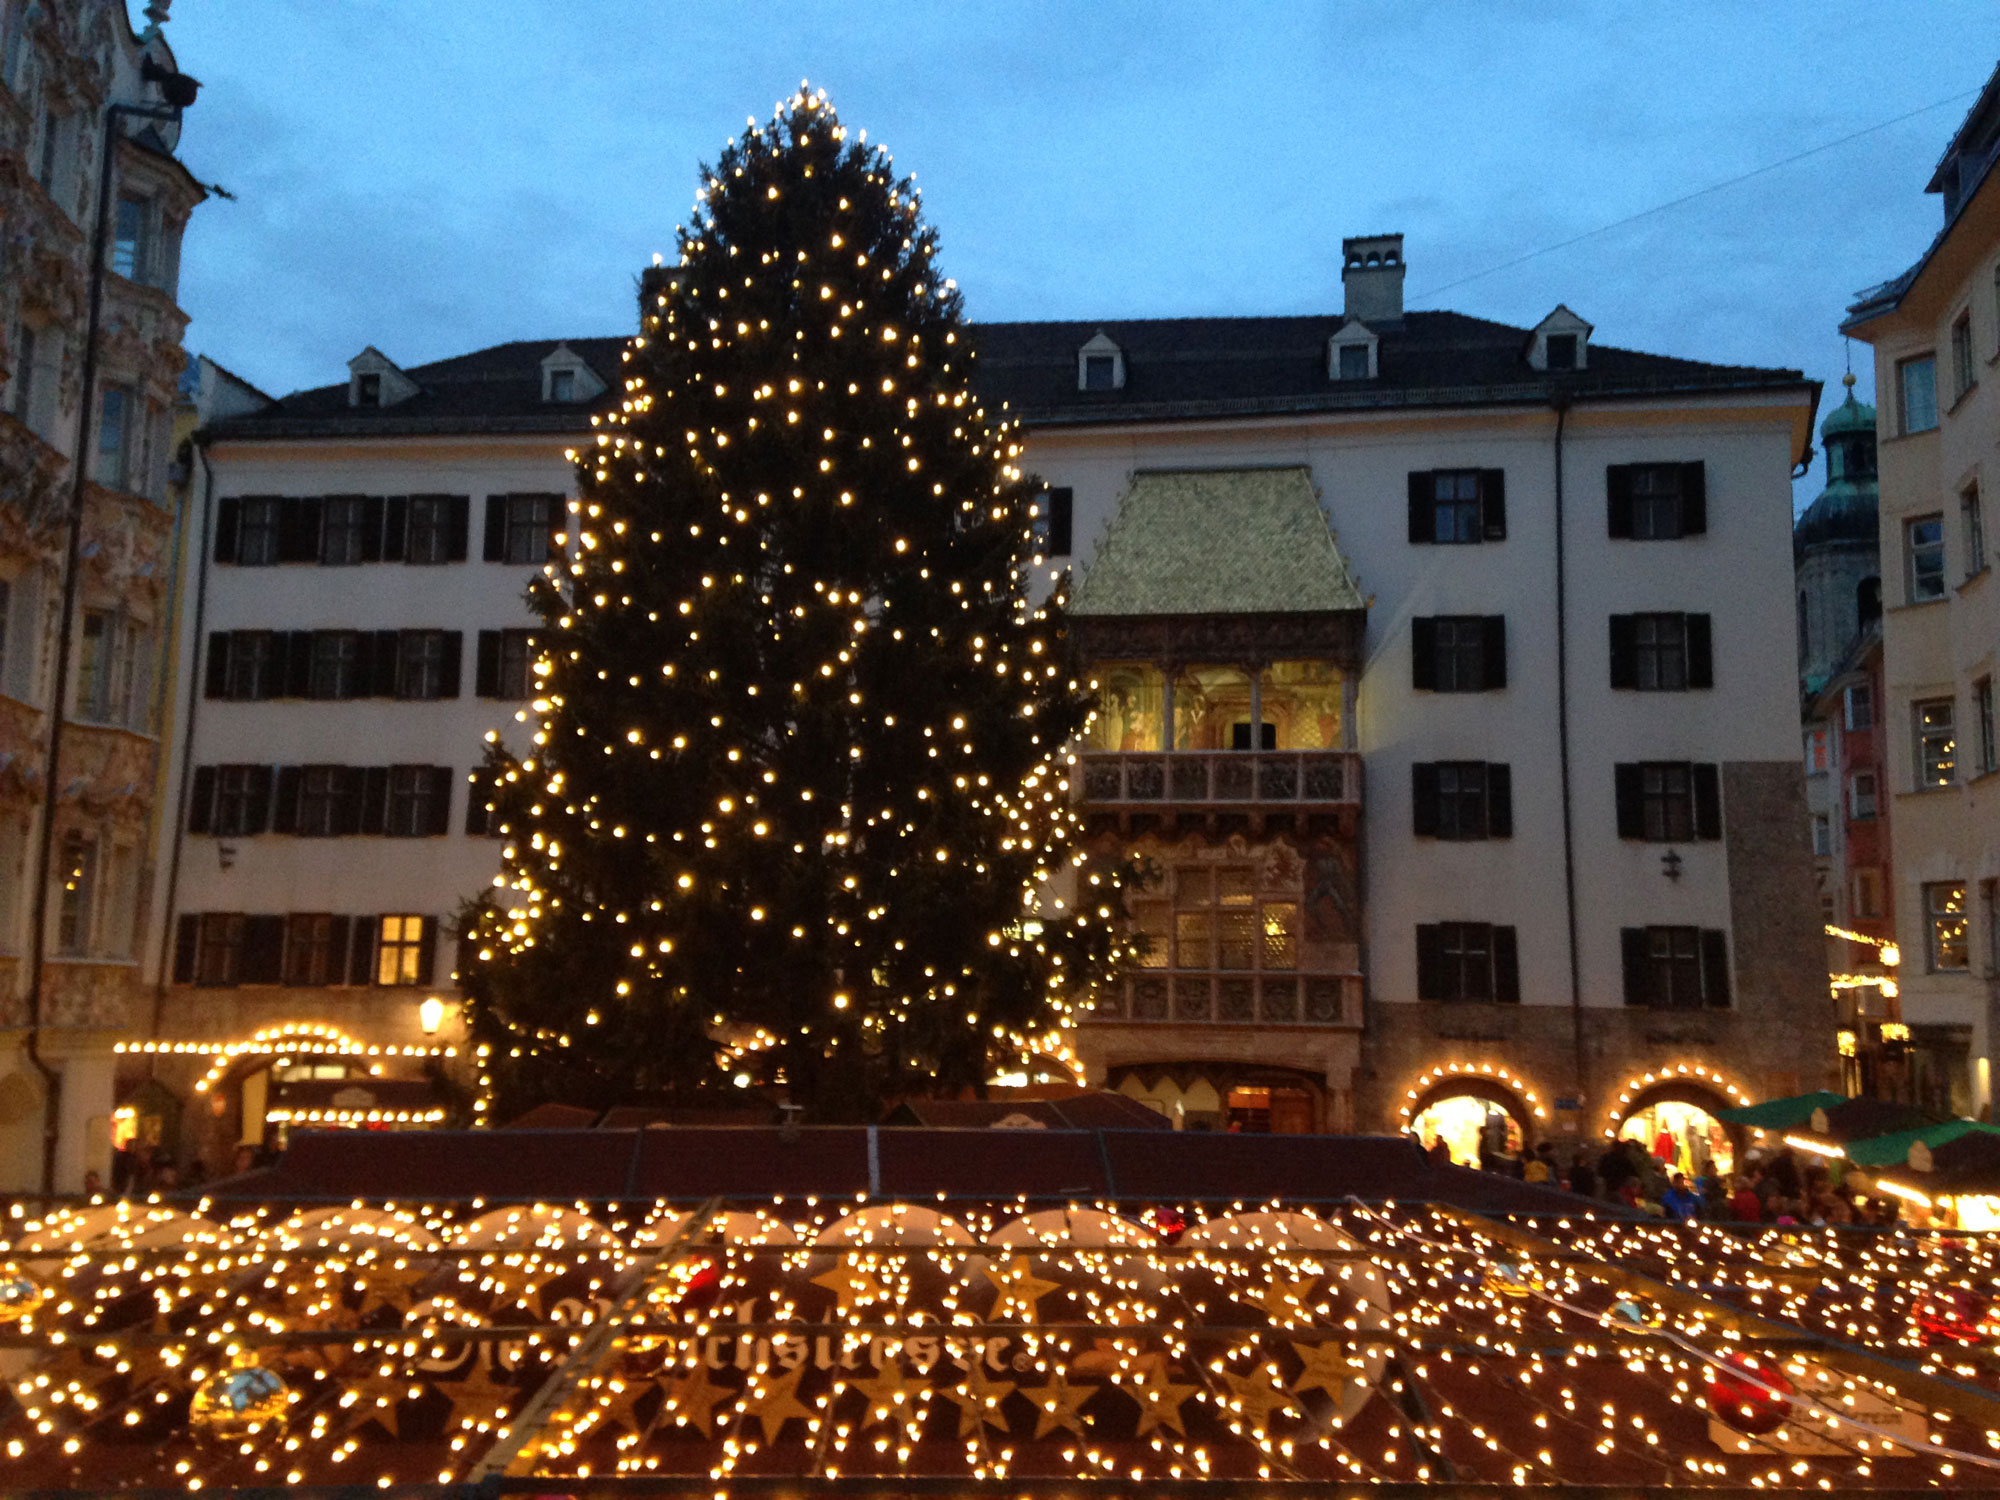 Strings of lights at the Christmas market in Innsbruck, Austria, on Dec. 4, 2015. 680 NEWS/Patricia D'Cunha.